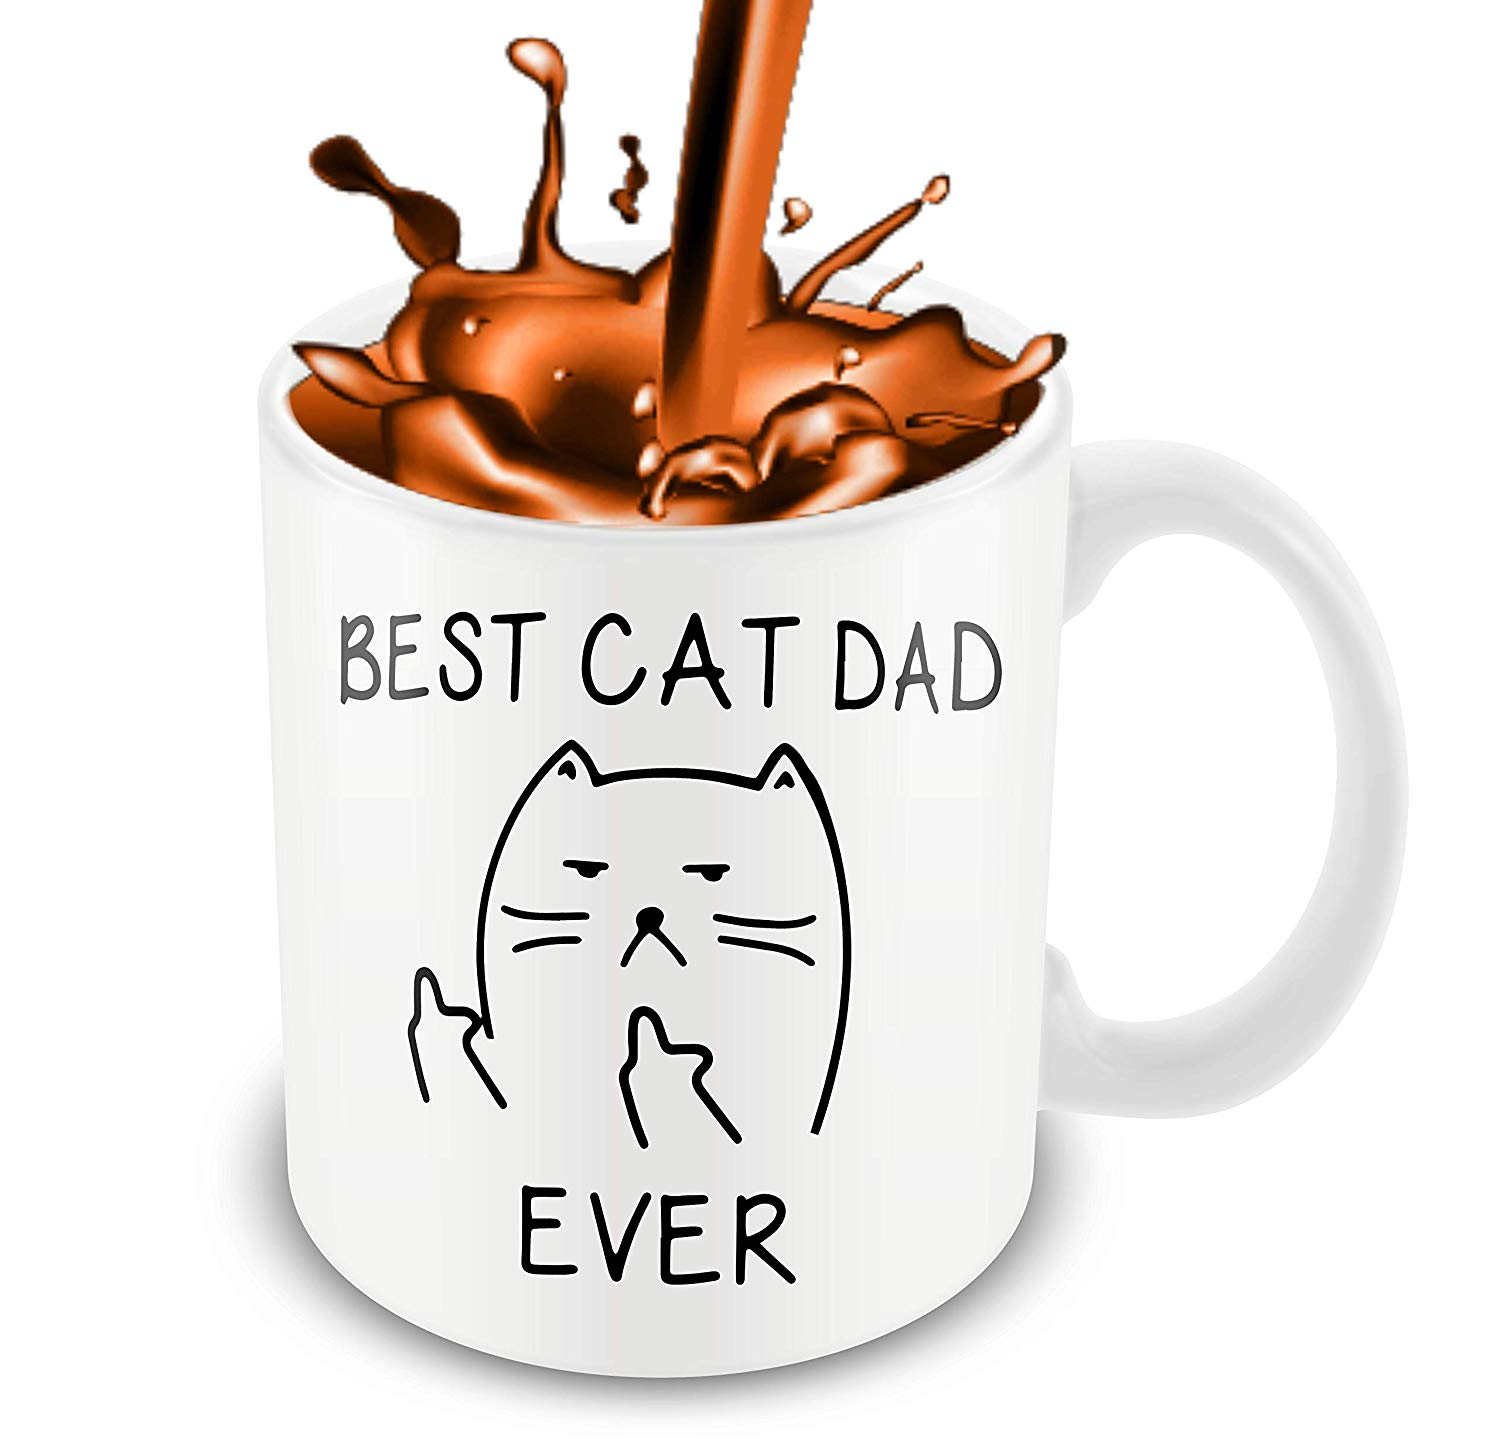 Best Cat Dad EverFunny Cat Lover Gifts Funny Middle Finger Coffee MugUnique Birthday Gift For Dad B079FZ3DHS